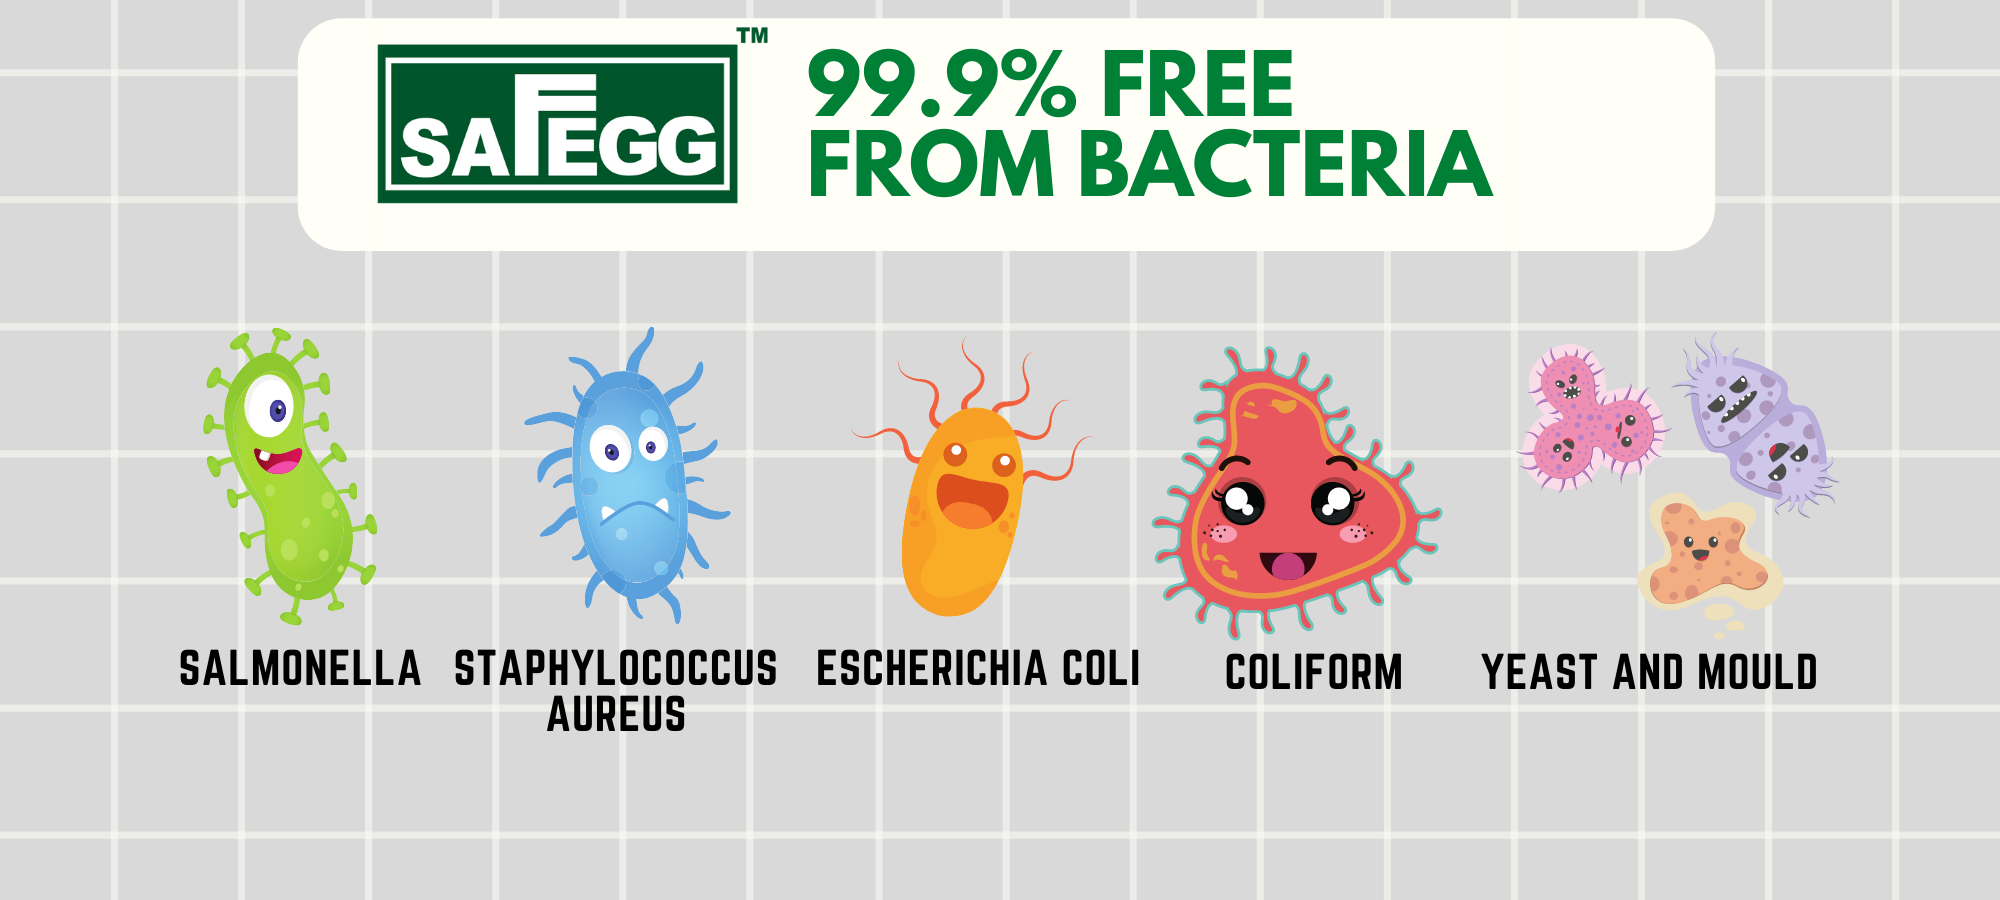 Safegg 99.9% Free from Bacteria